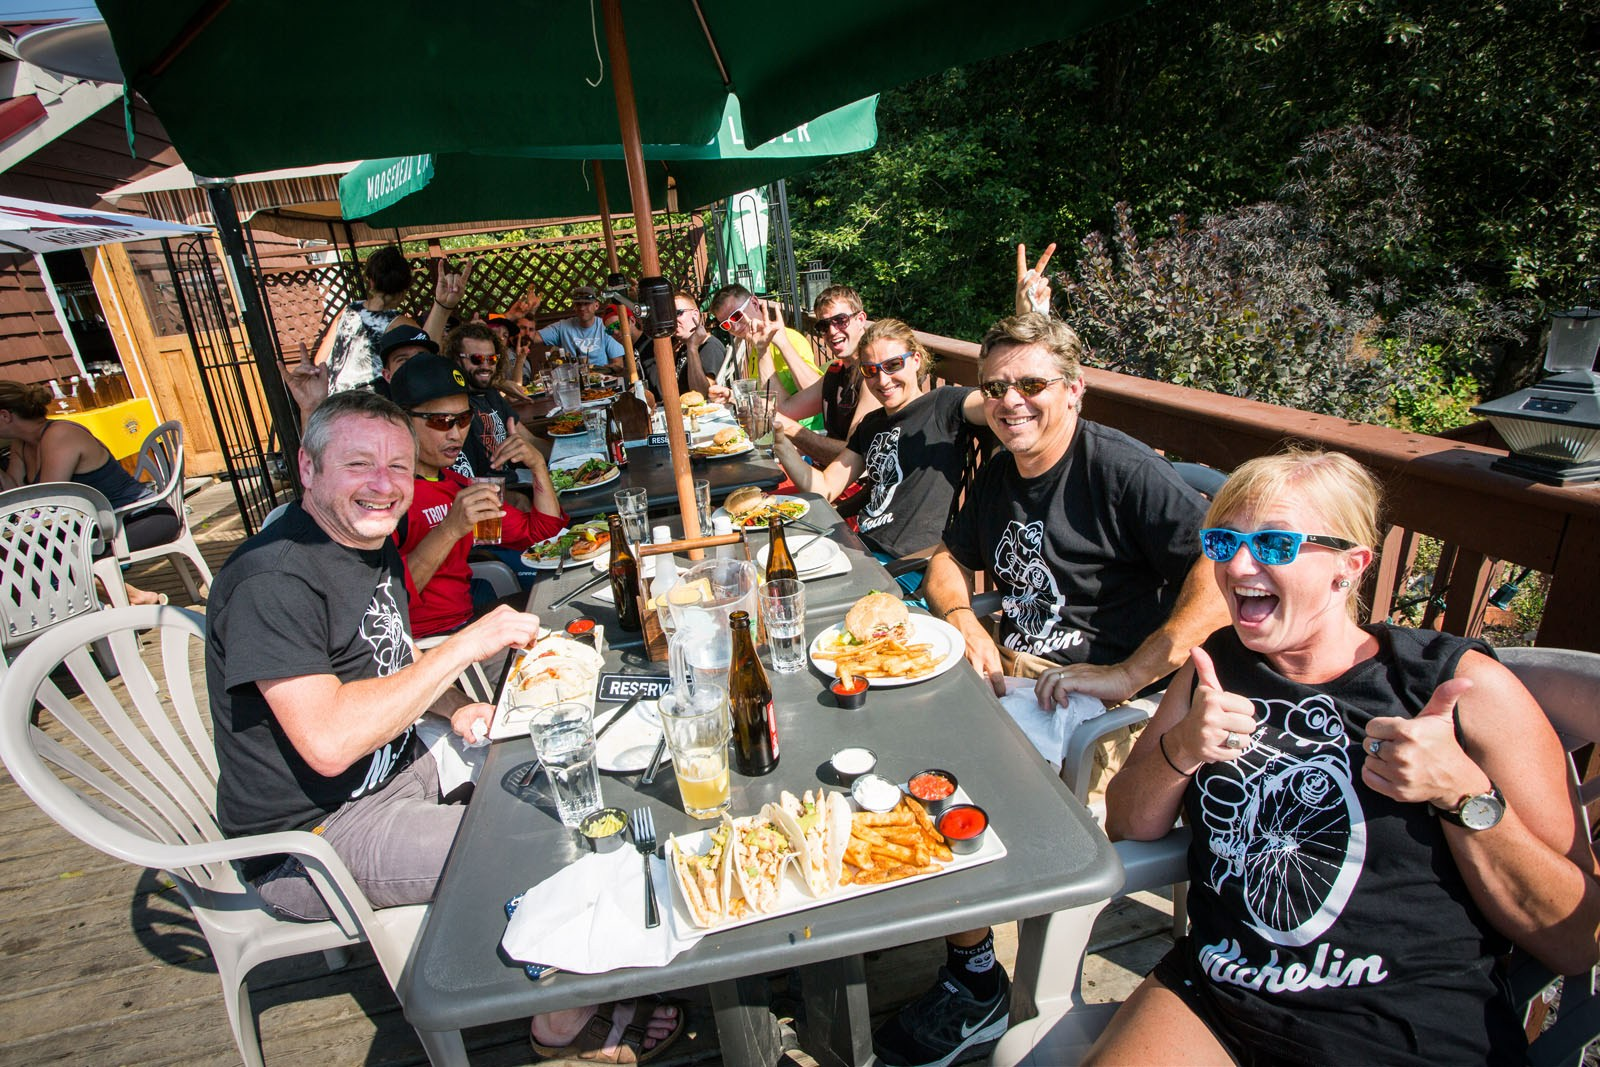 The Watershed Bar and Grill in Squamish was a great way to wrap up the ride. Thanks to Michelin for a fun and educational day.